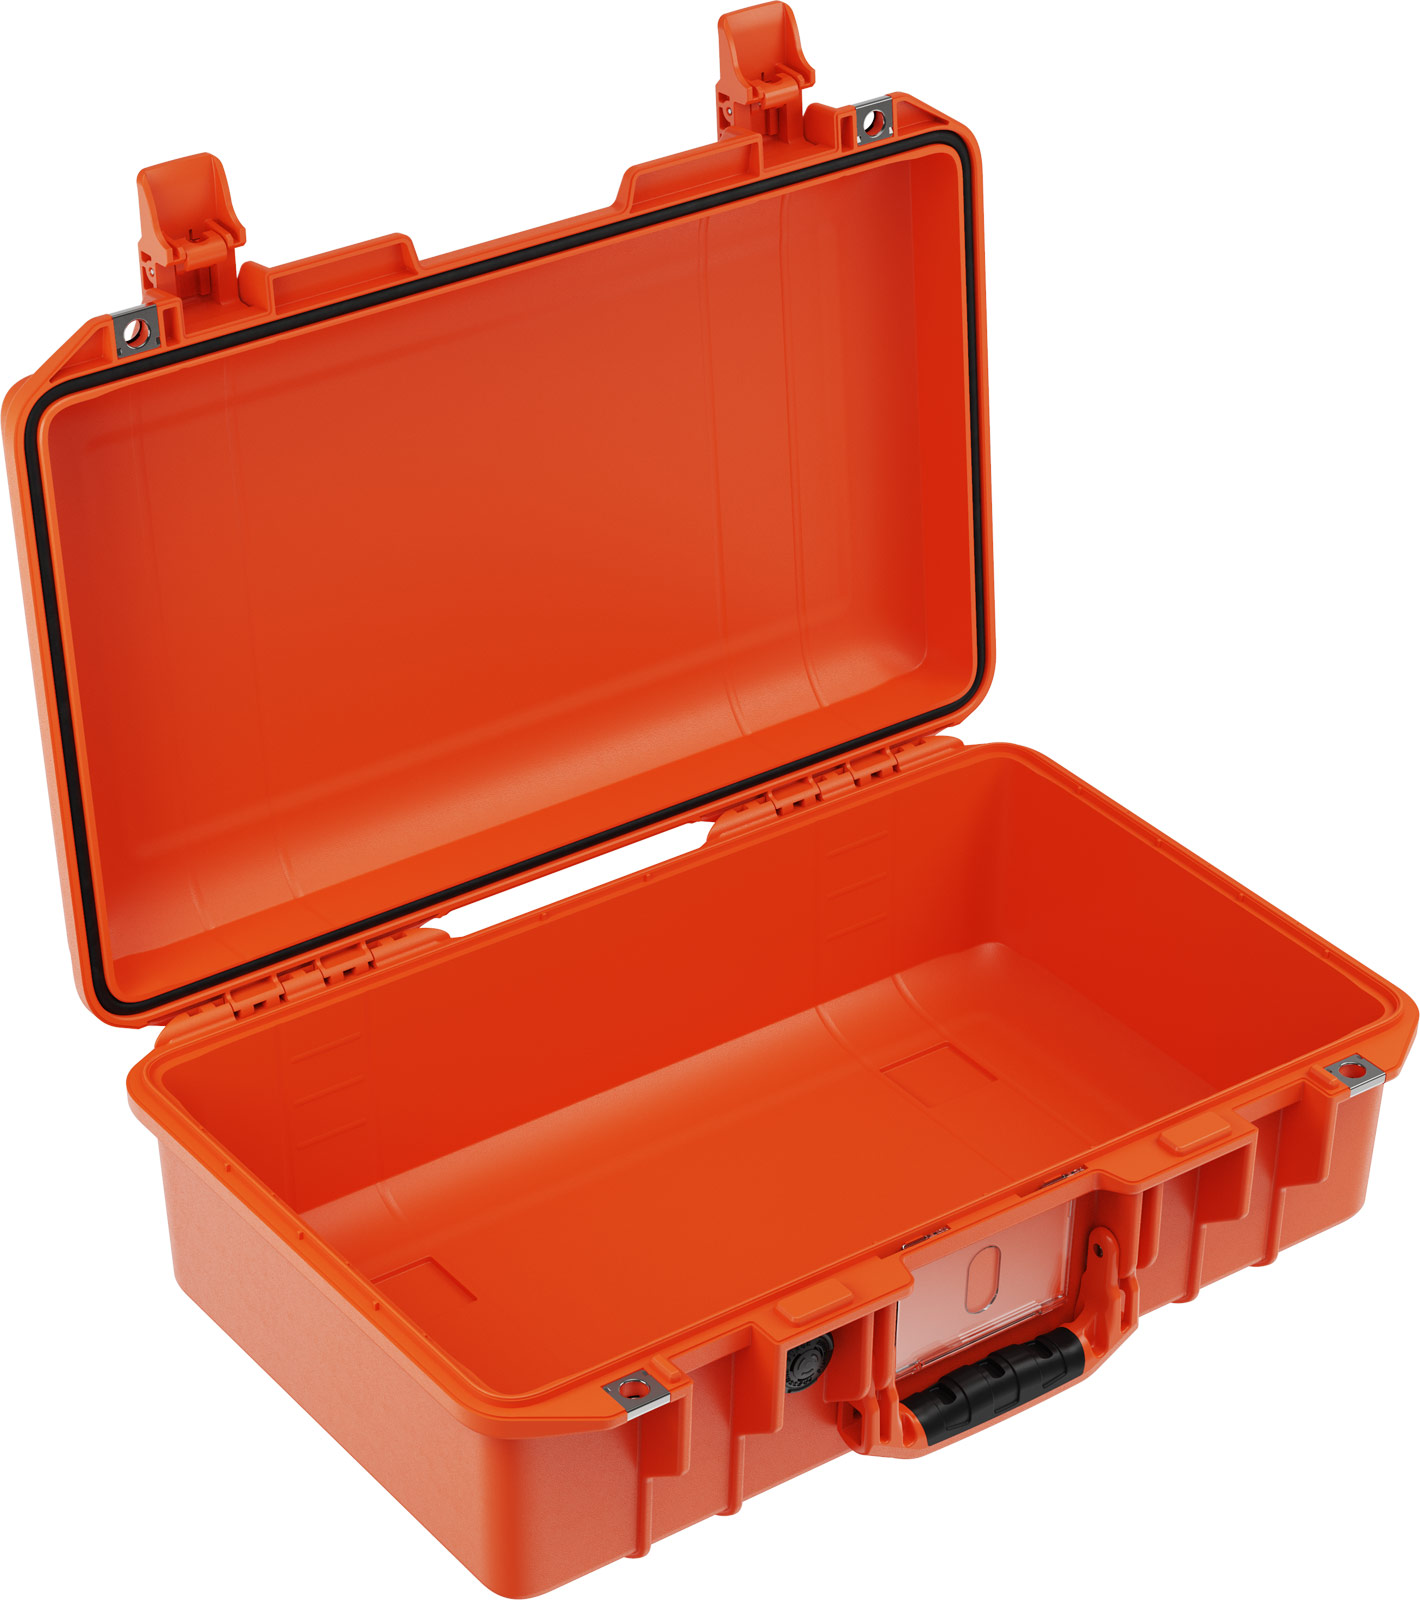 buy pelican air 1485 shop orange travel case